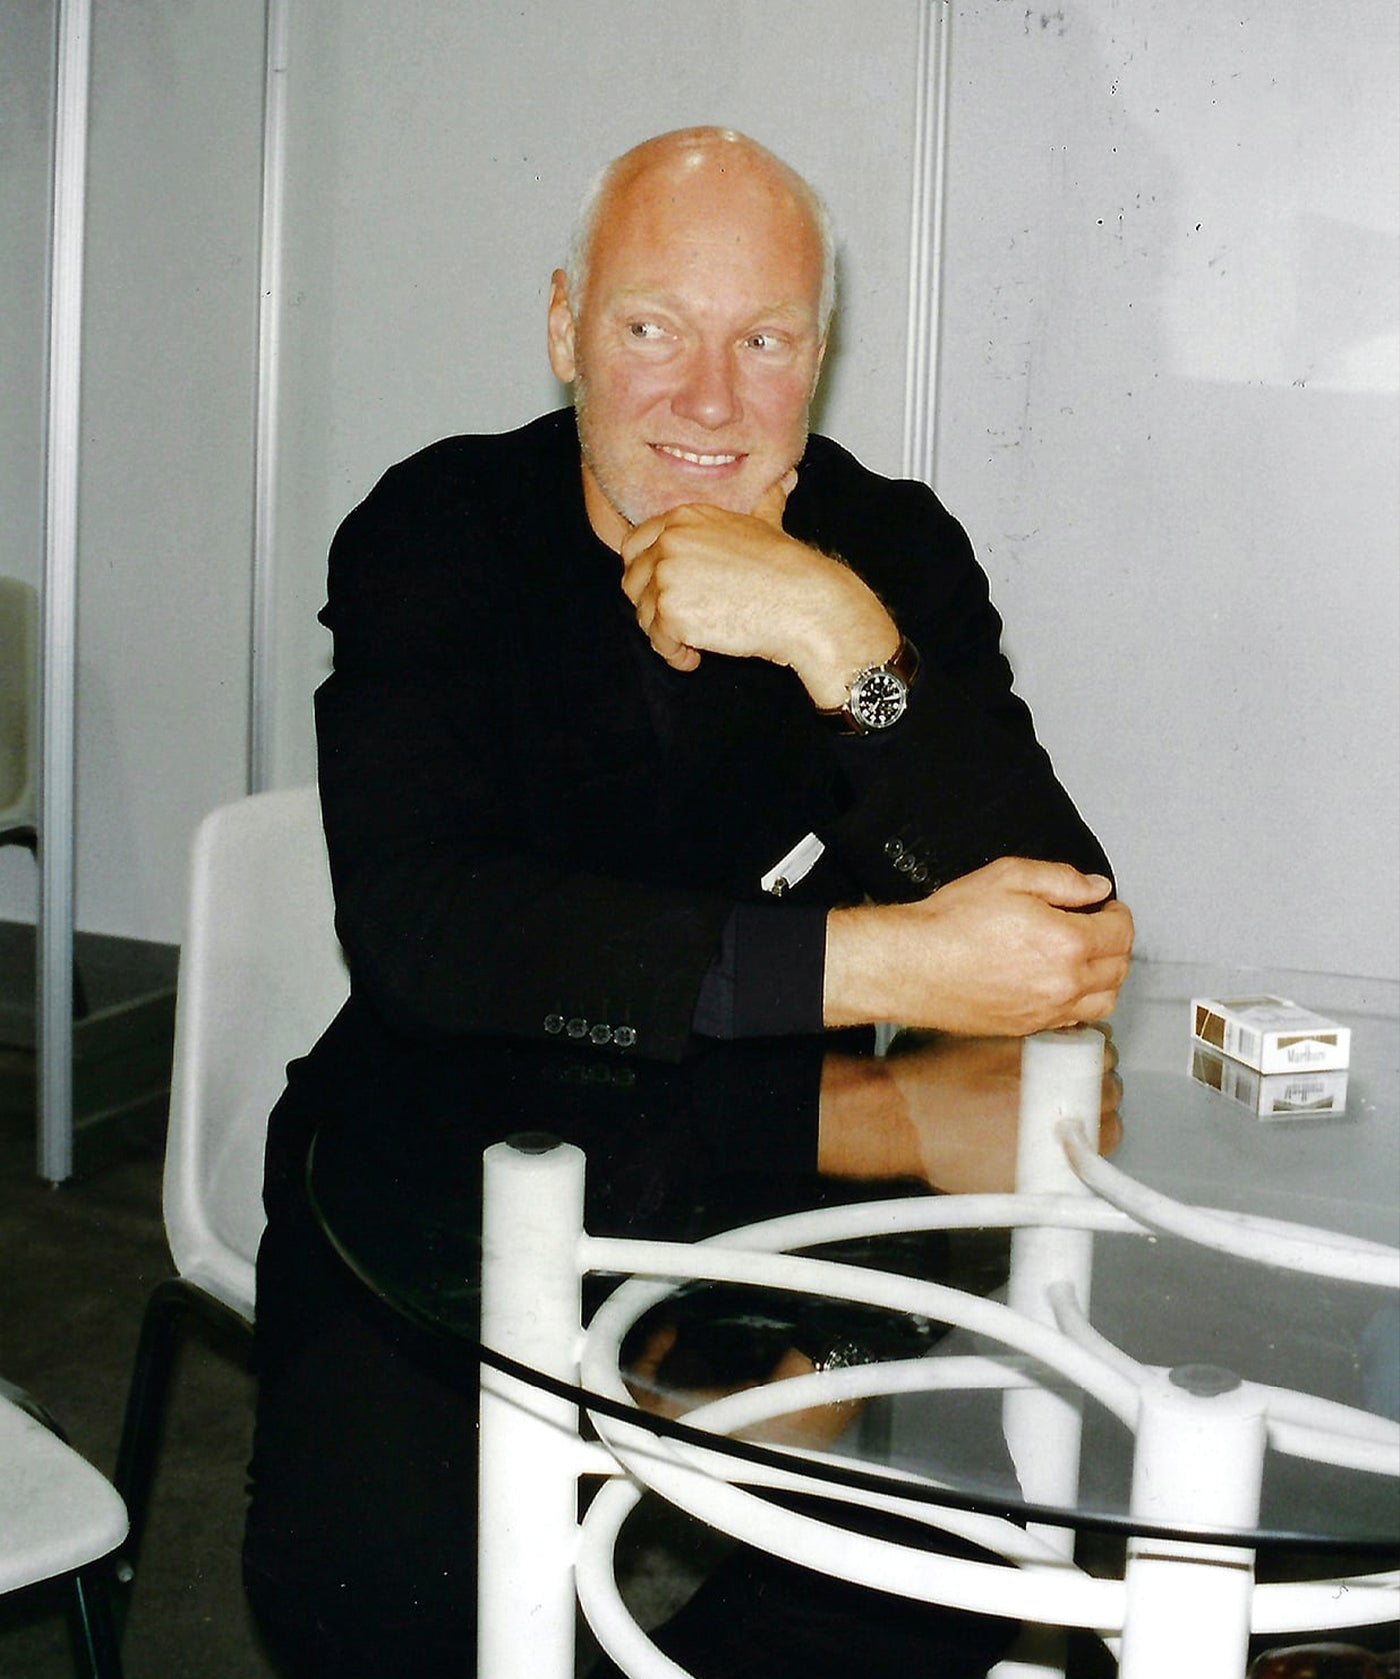 Jean-Claude Biver watch industry veteran and CEO of Omega, Hublot and TAG Heuer for A Collected Man London